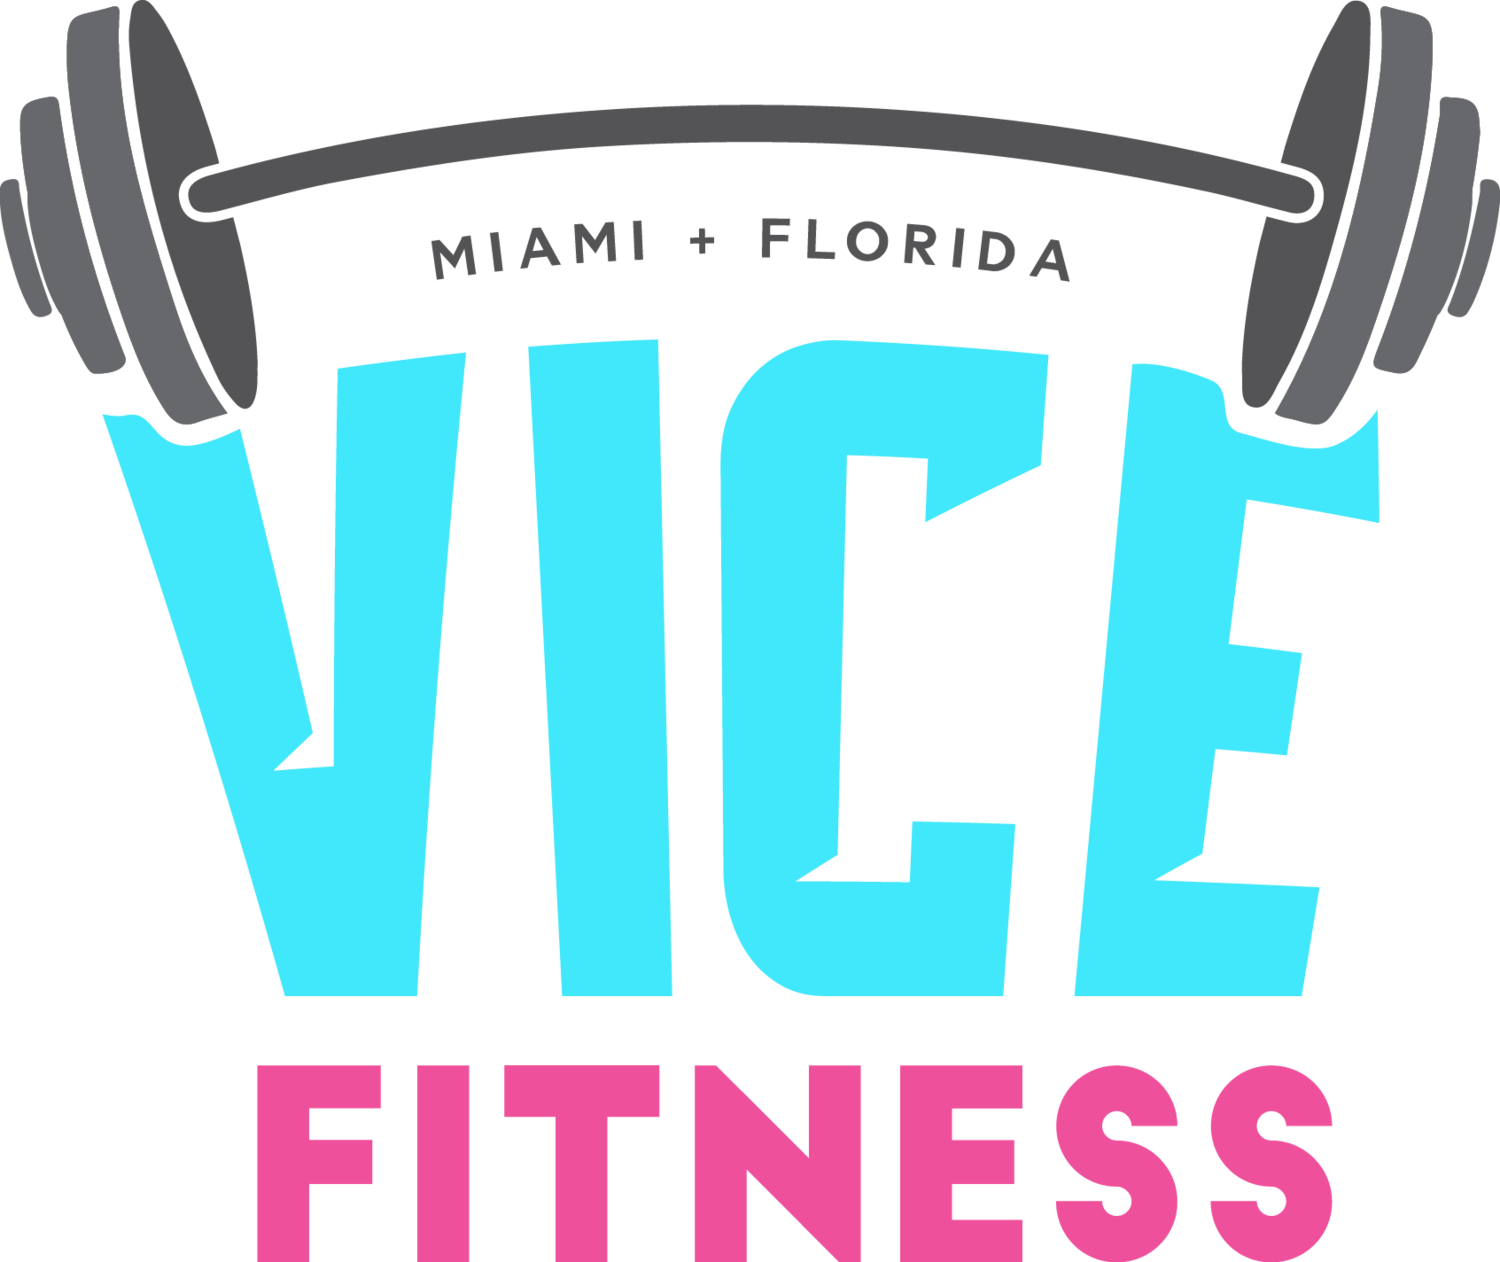 Gym clipart functional training. Vice fitness